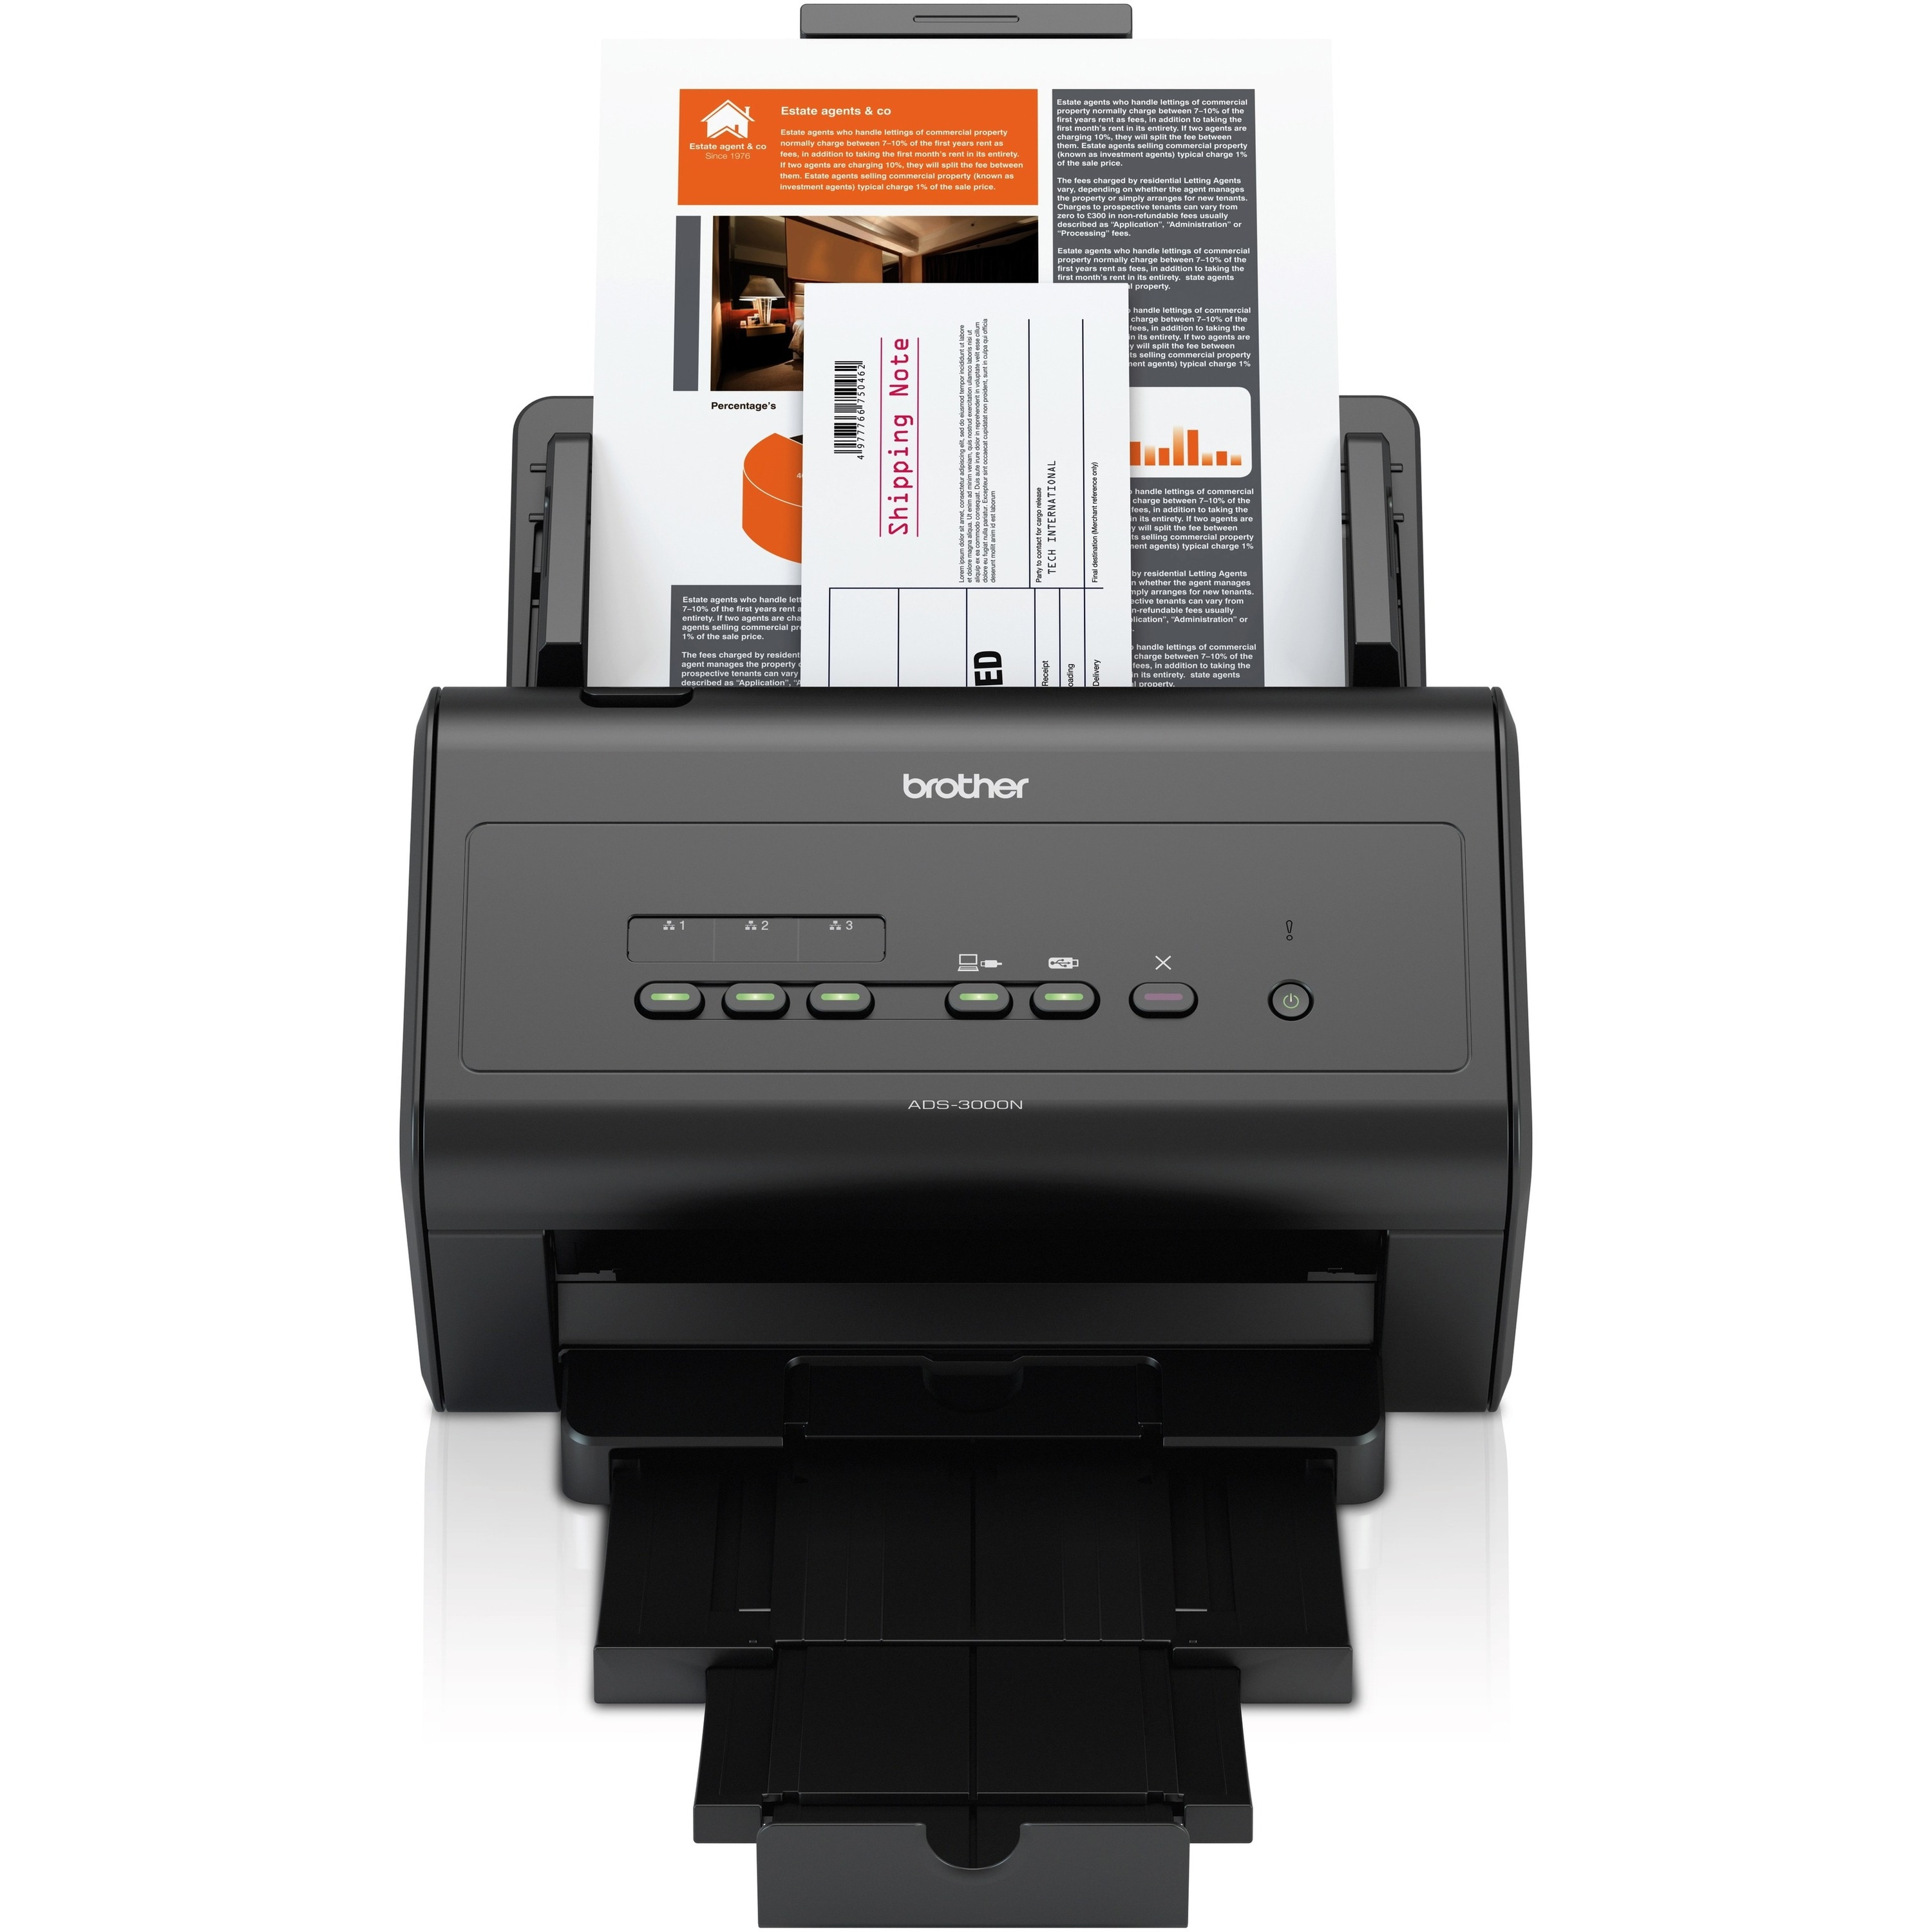 Brother ImageCenter™ ADS-3000N High-Speed Document Scanner - Du